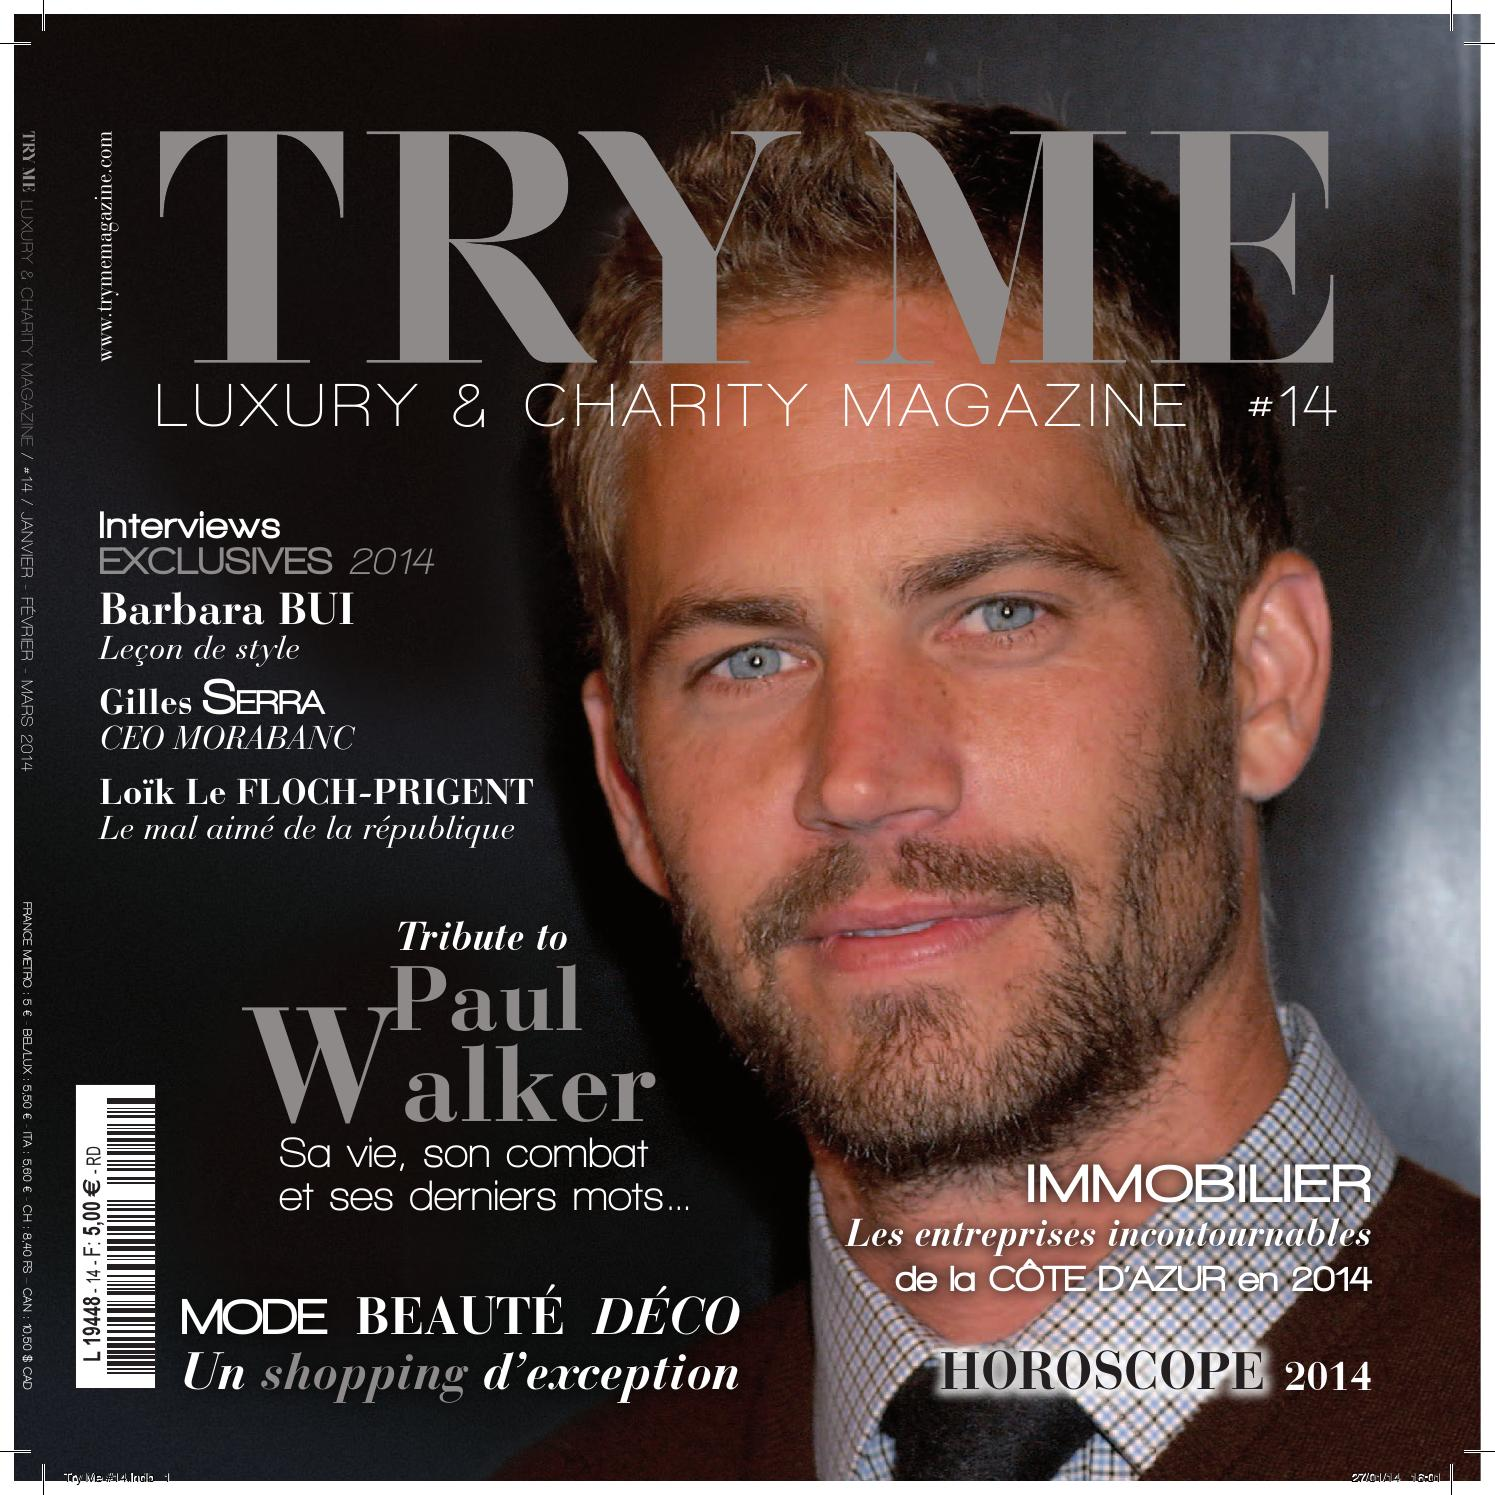 TRY ME Luxury   Charity Magazine   14 by trymemagazine - issuu 4a7991066c8f